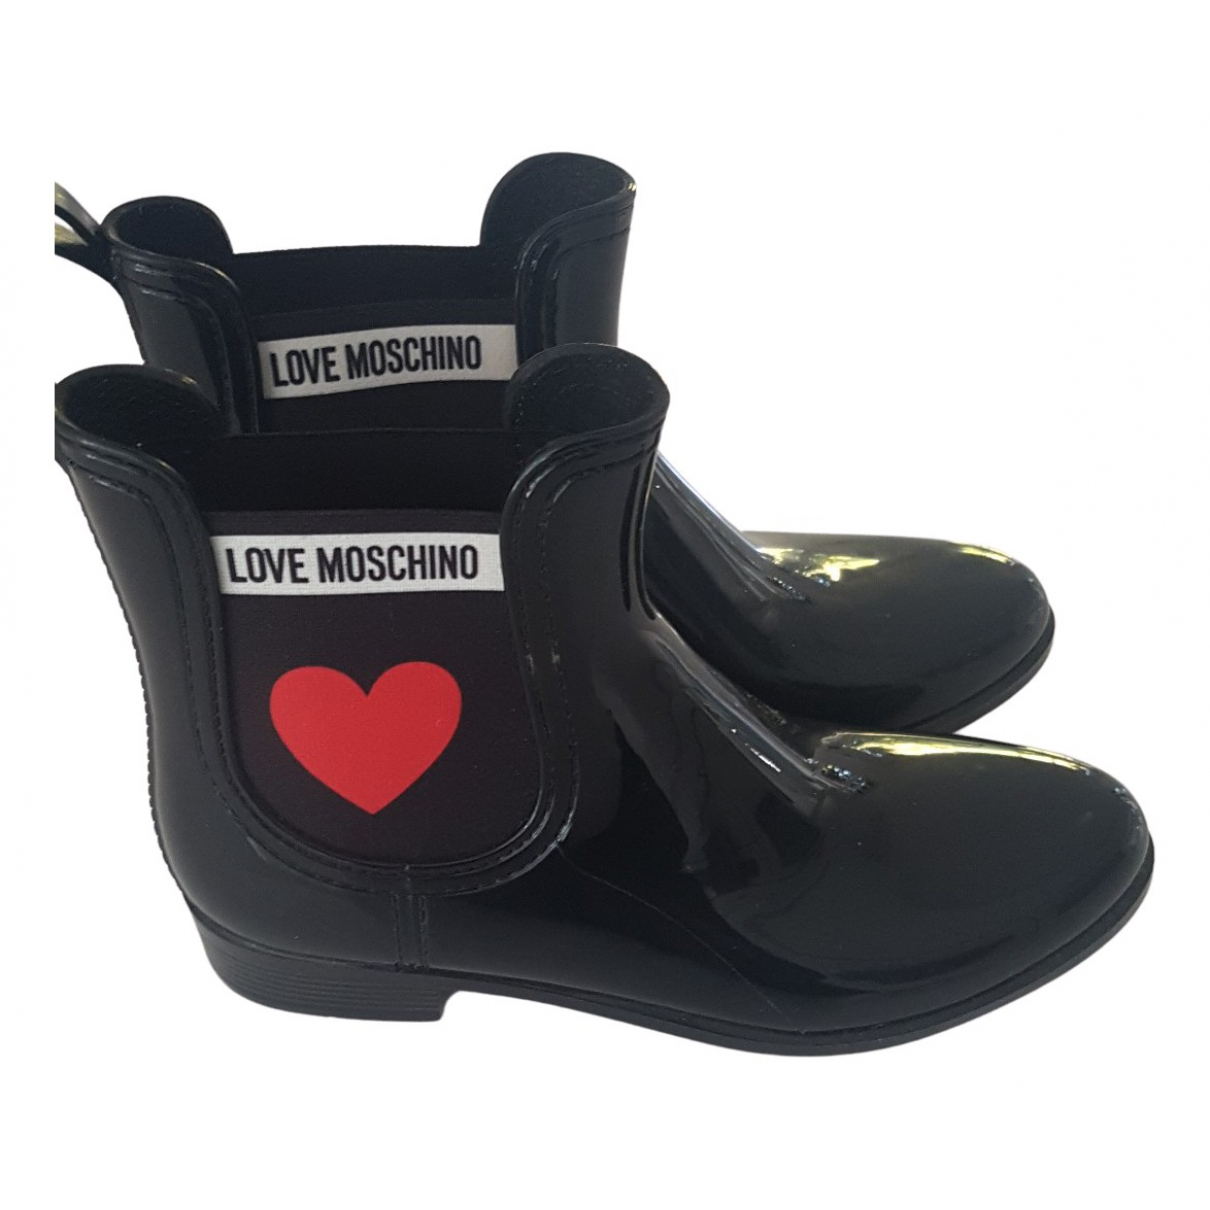 Moschino N Black Rubber Ankle boots for Women 39 EU